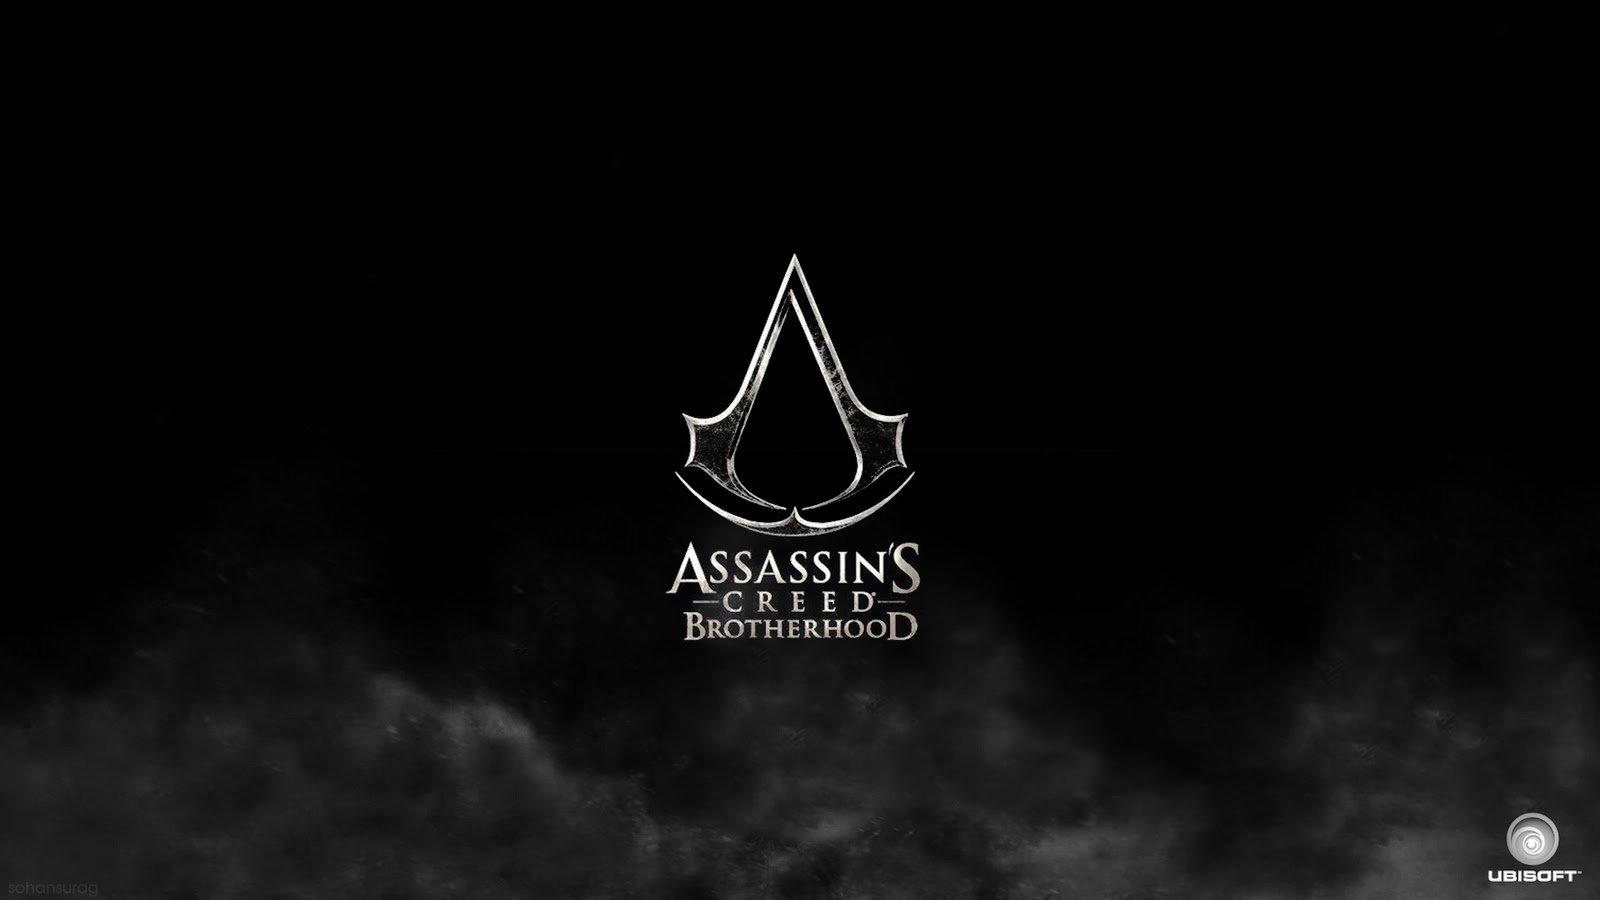 Assassins Creed Logo HD Wallpapers Download Wallpapers in HD for 1600x900